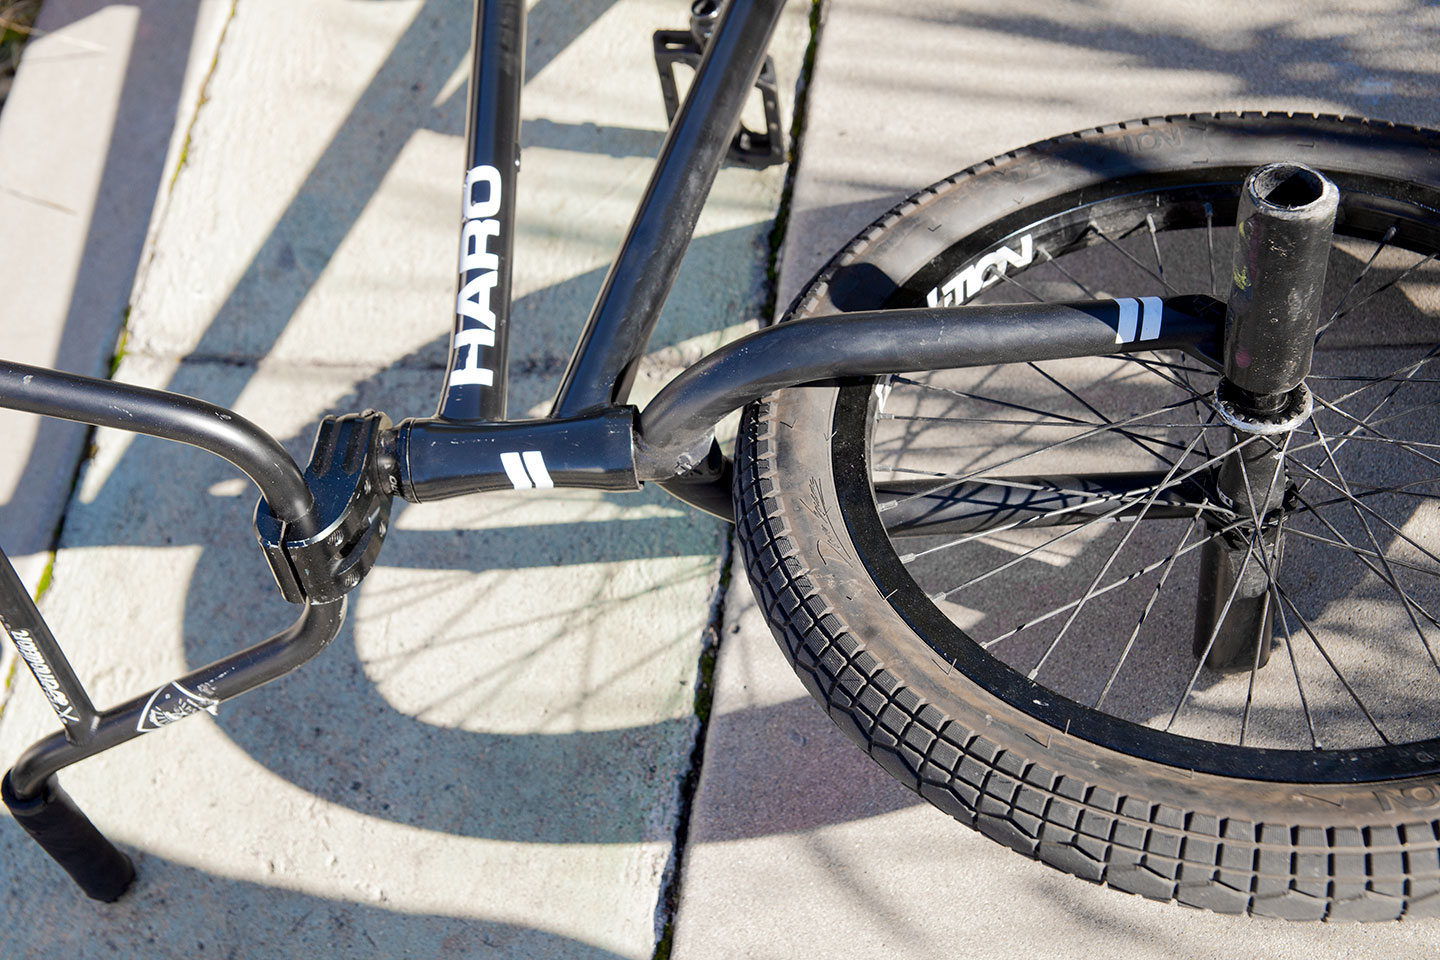 Tyler: Paradise bars, Paradise stem, Fox fork, Bulimia front wheel and Bipolar pegs